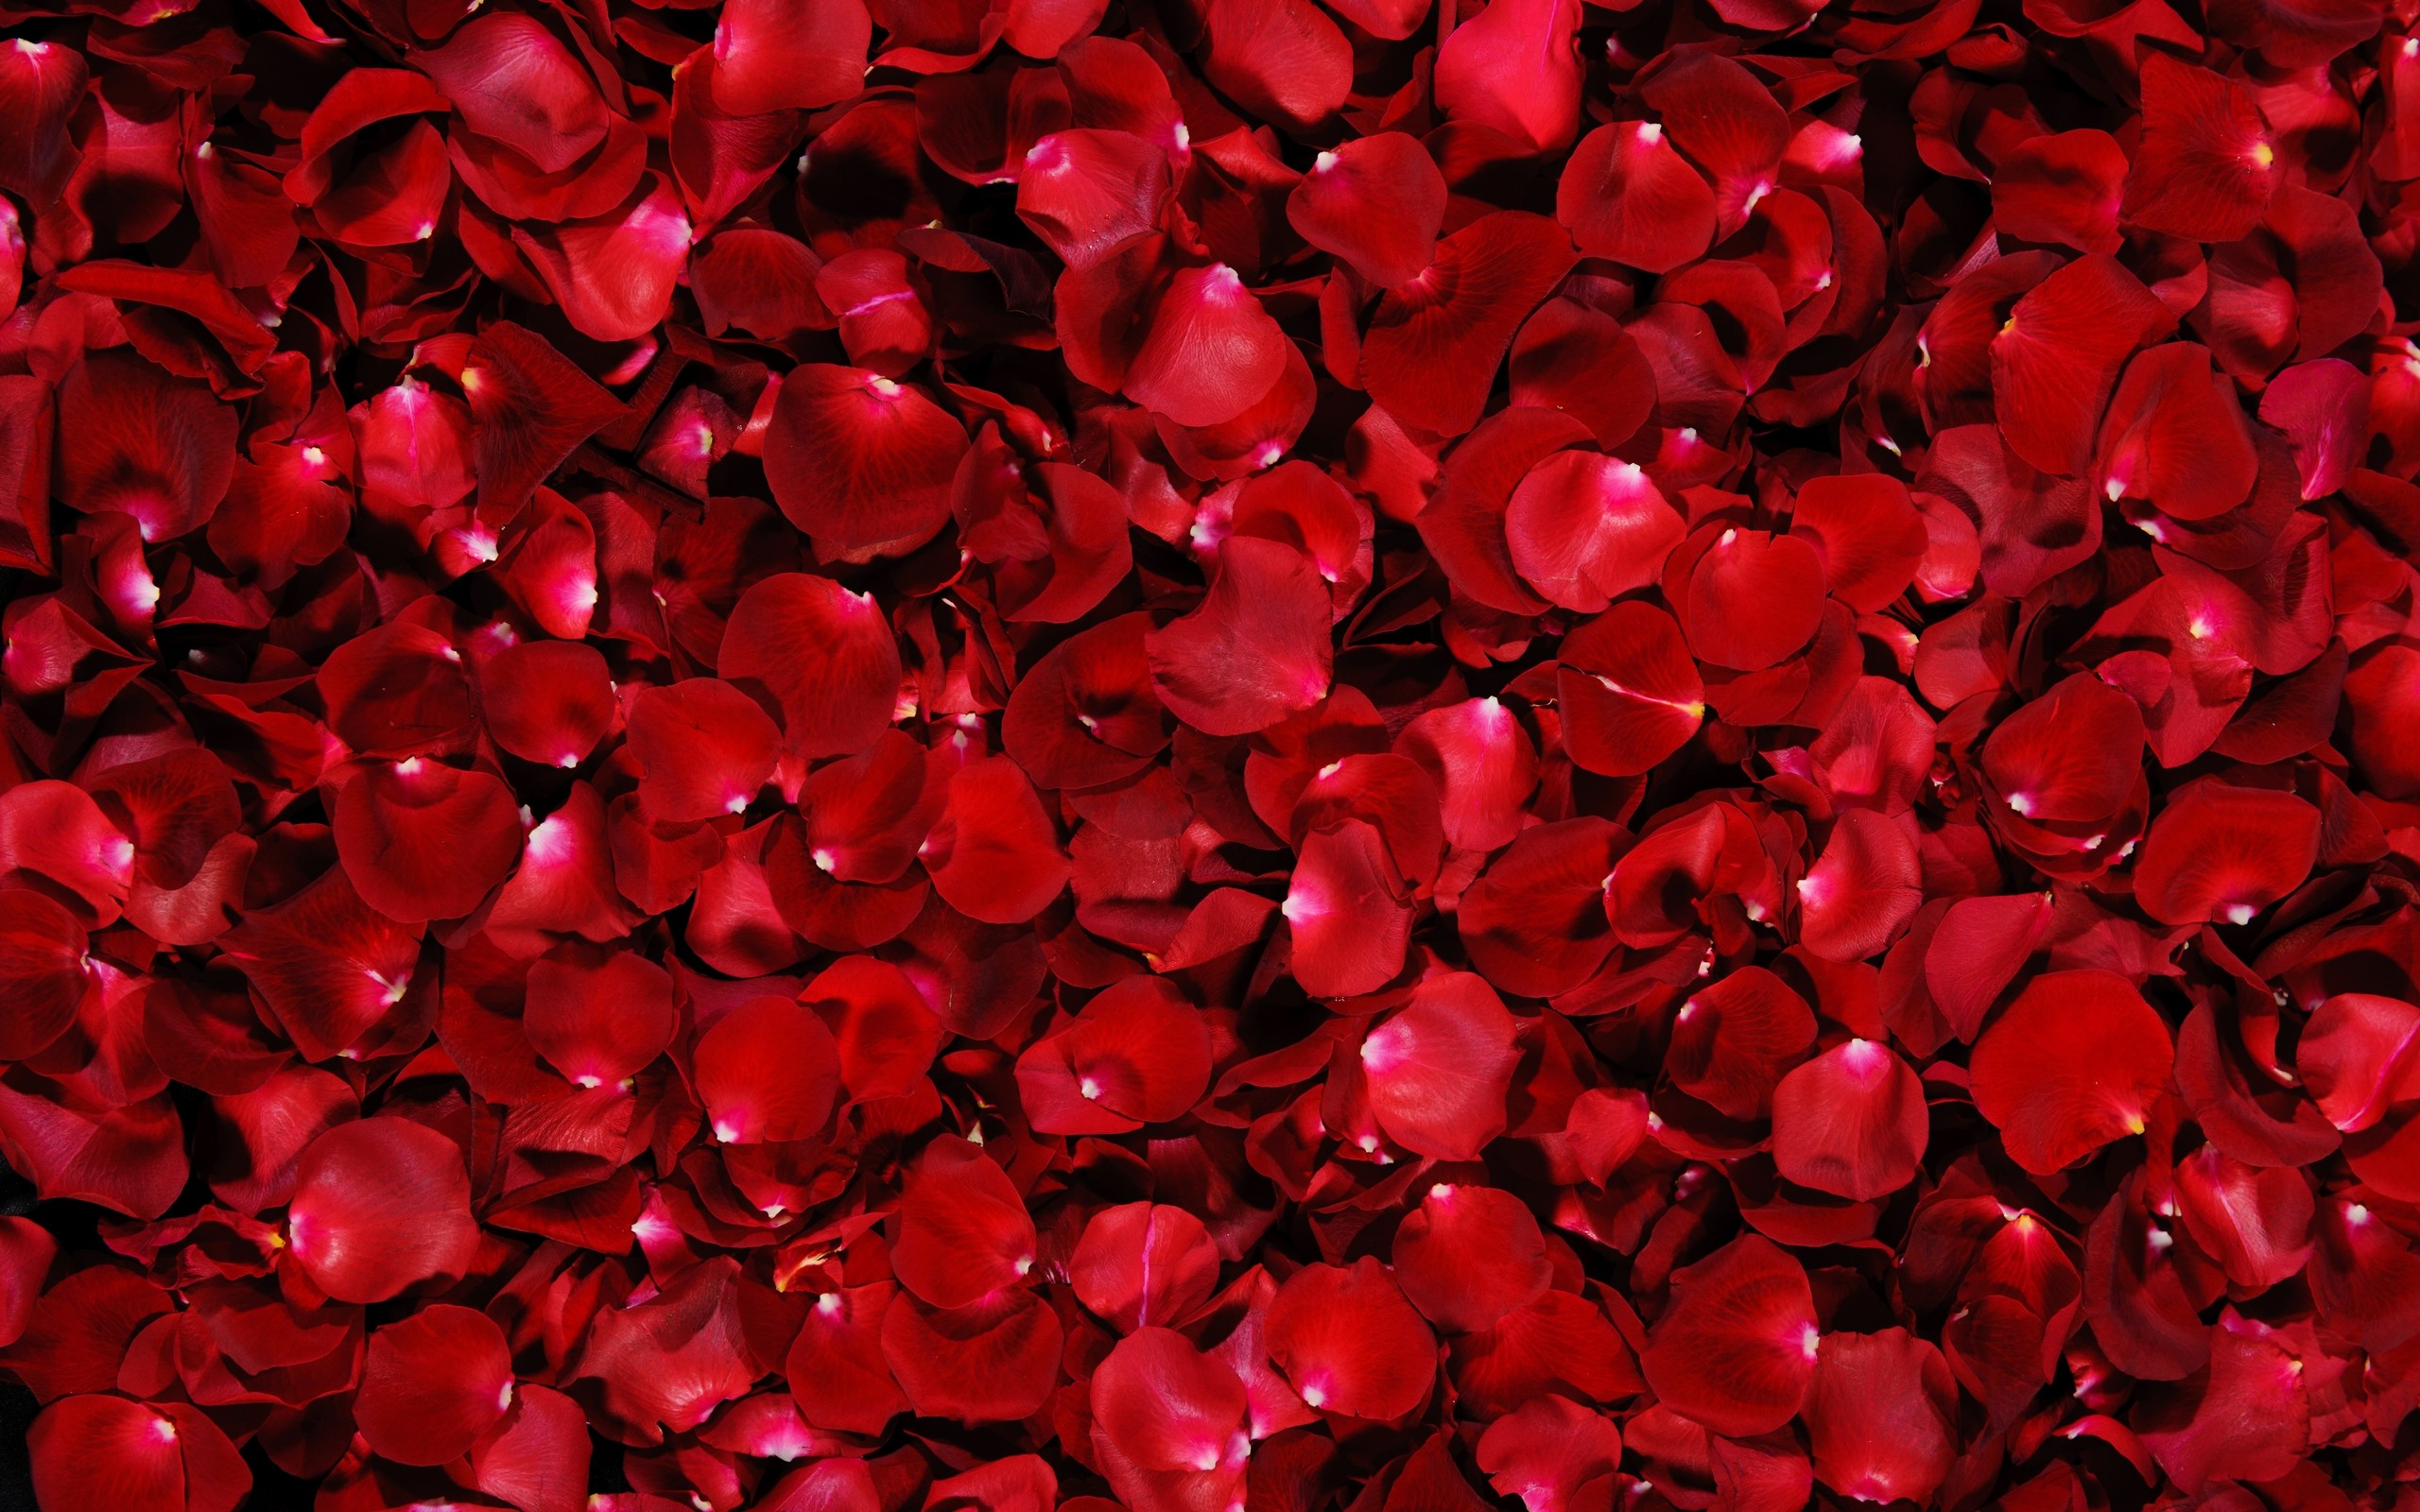 Red Rose Petals Wallpapers Red Rose Petals Myspace Backgrounds Red 2560x1600